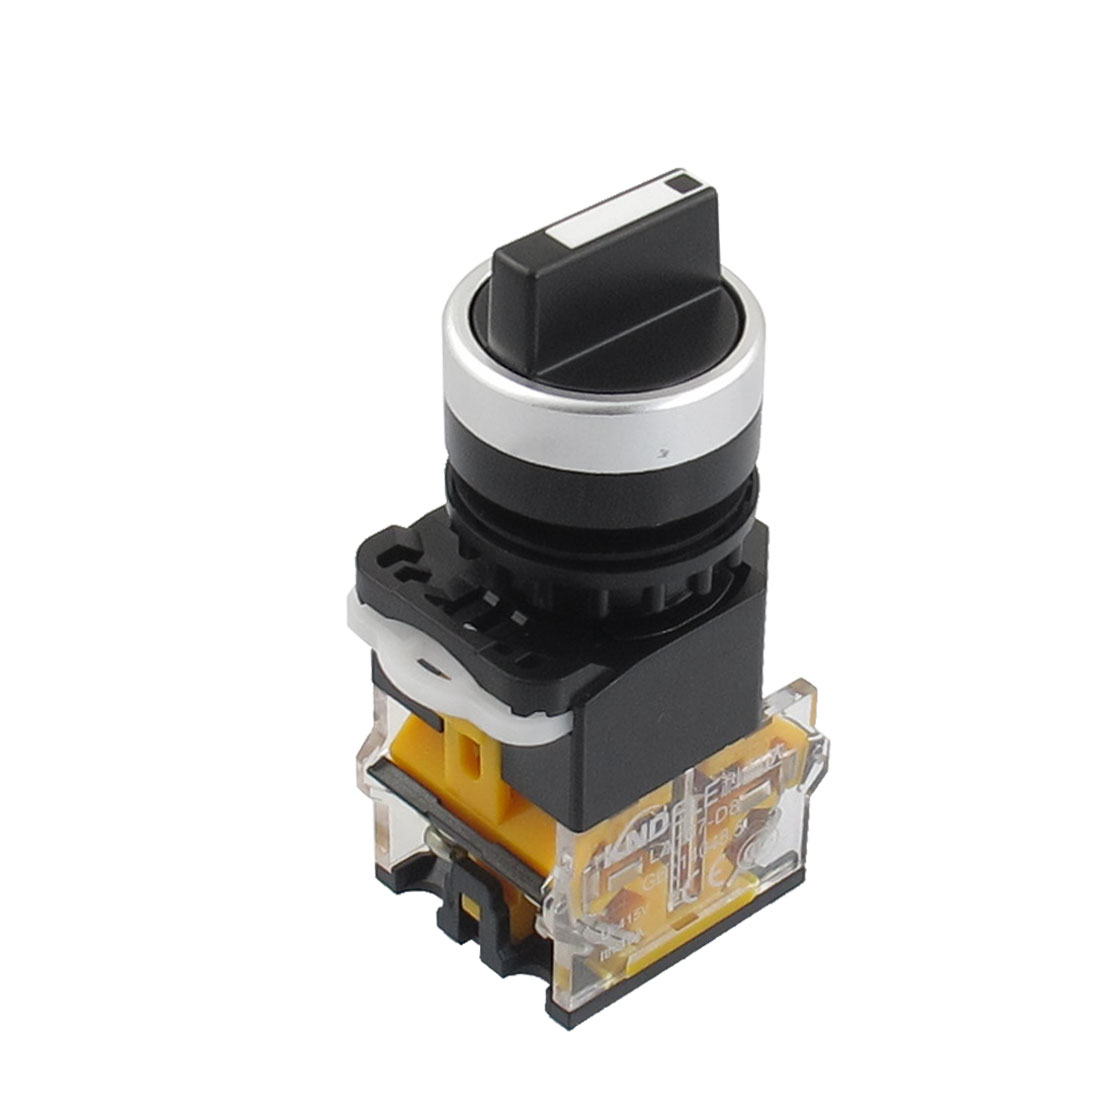 415V 10A Latching On/Off/On 3 Position Rotary Selector Switch 22mm